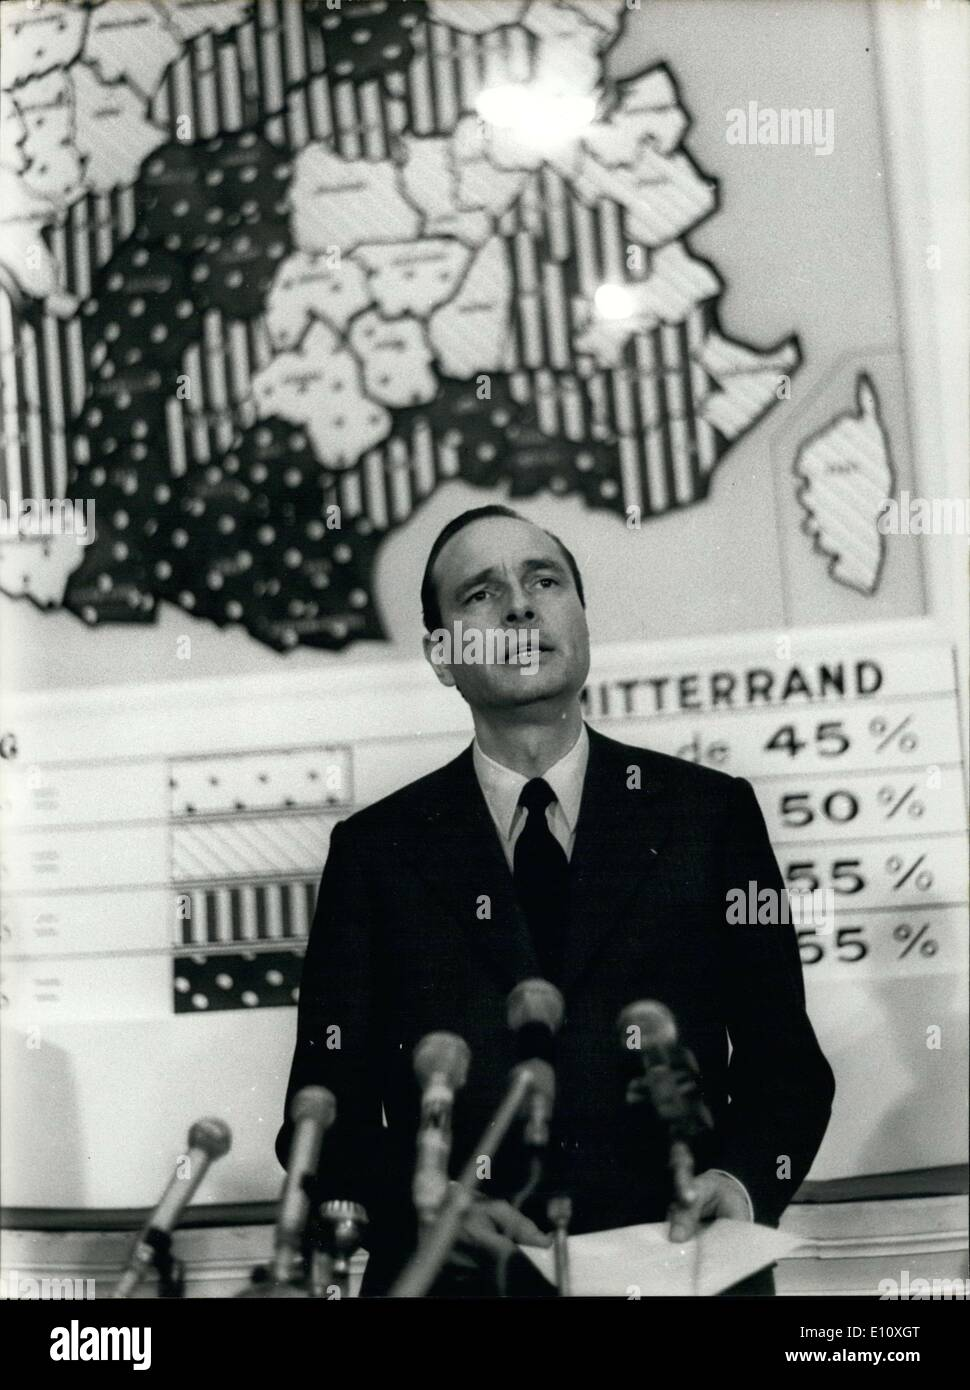 May 20, 1974 - He is at the Ministry of the Interior. - Stock Image